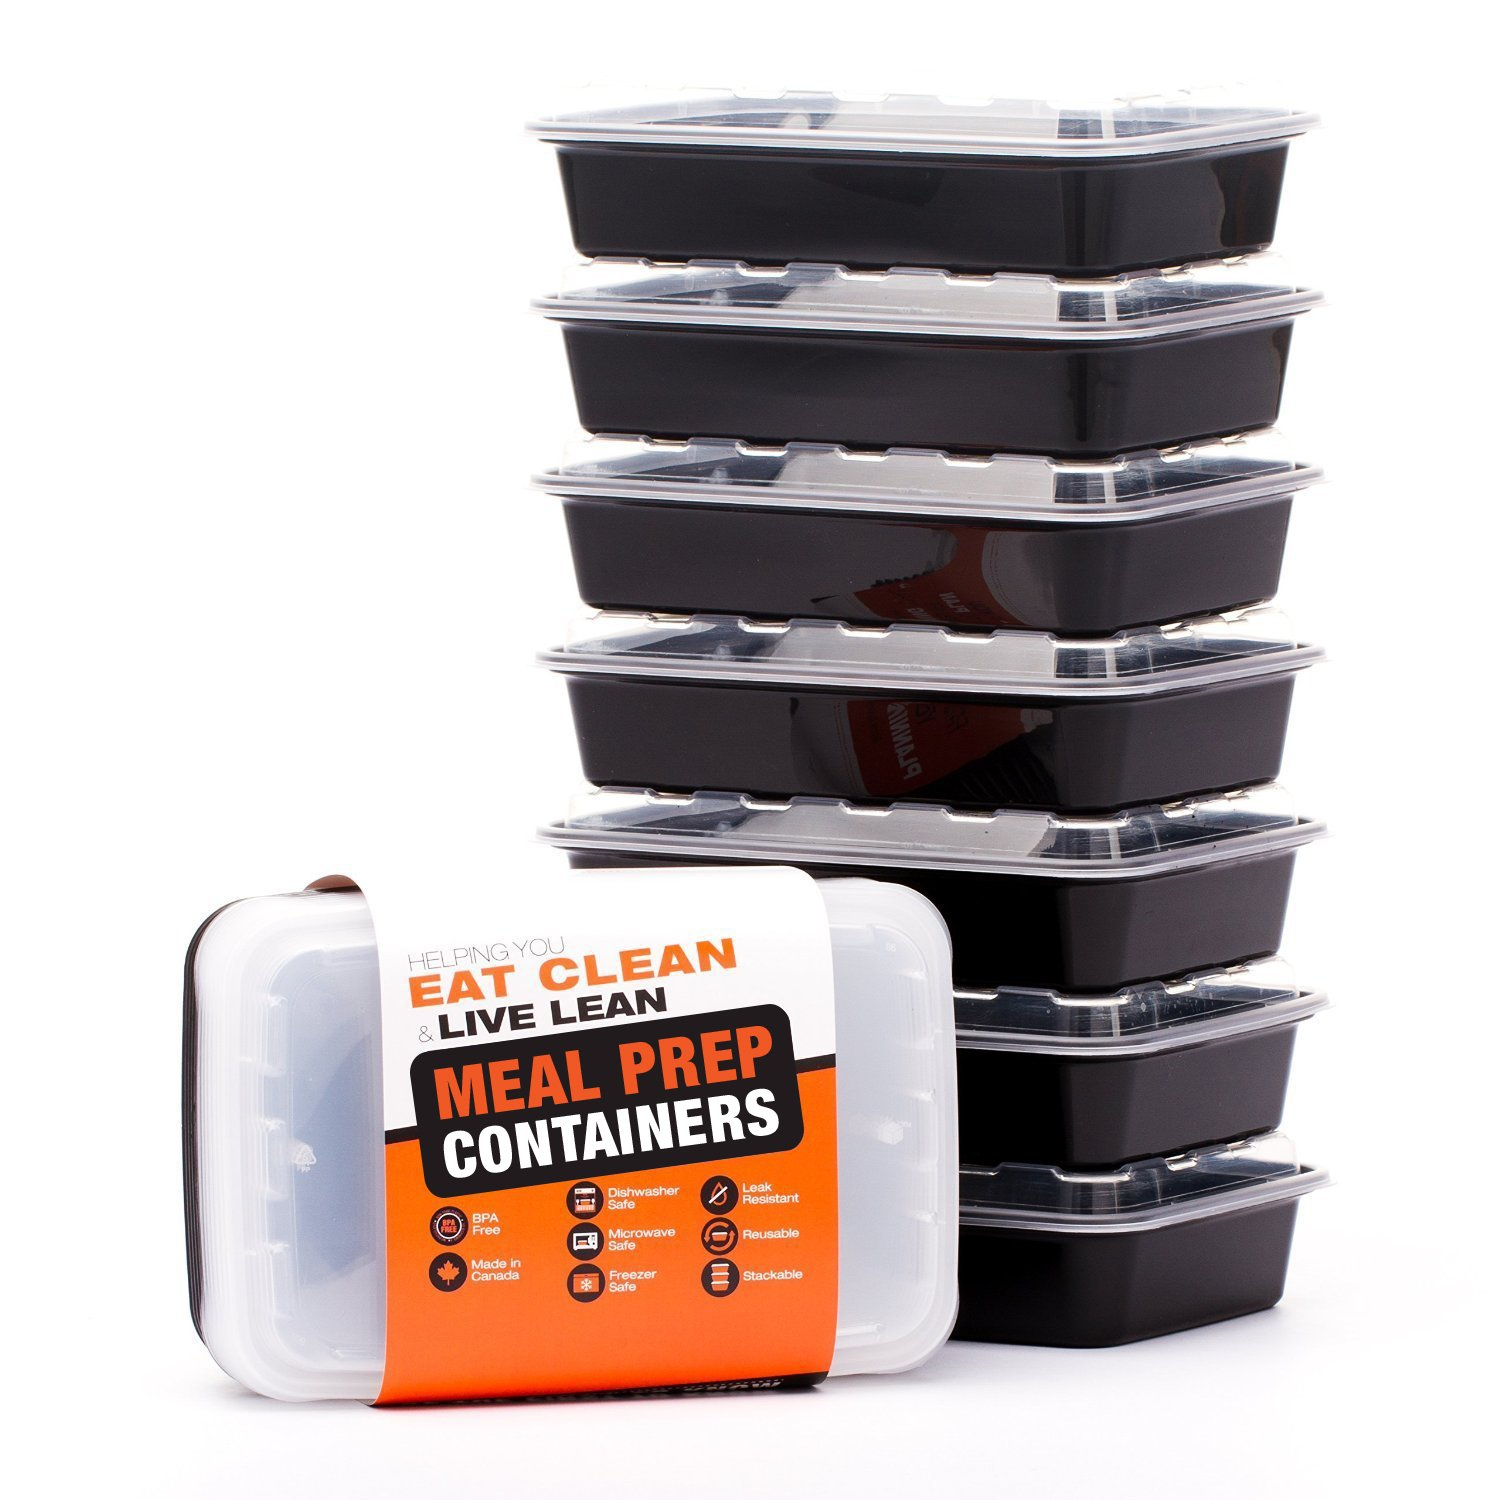 Evolutionize LIFT Certified BPA-Free Reusable Microwavable Meal-Prep Containers with Lids